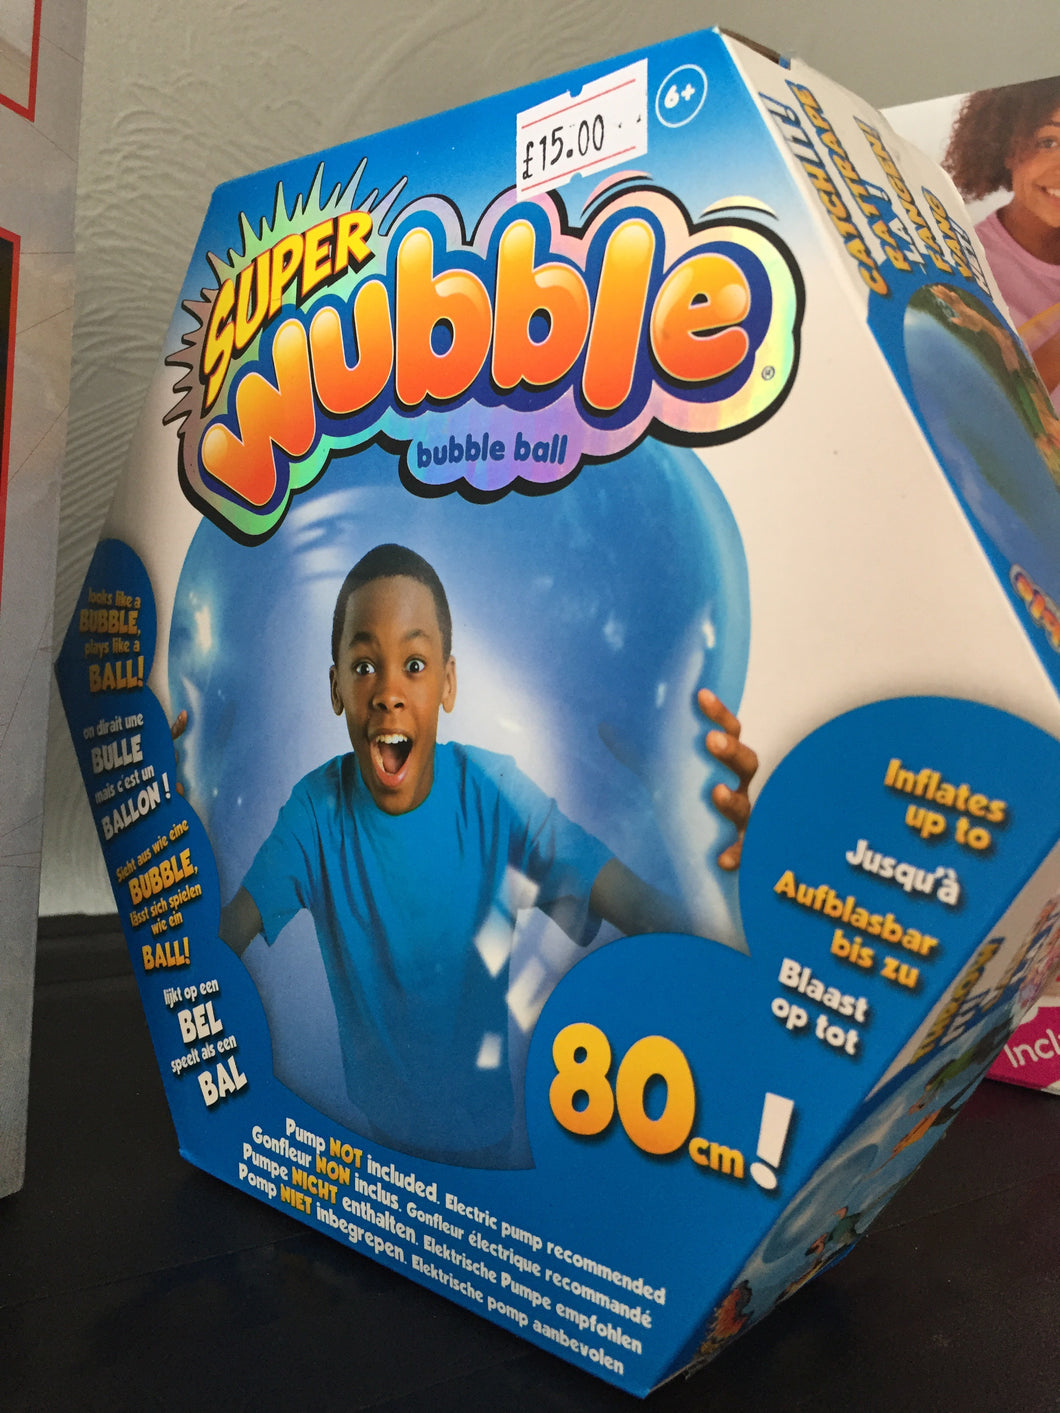 Super wubble bubble ball - First Class Learning Bradford